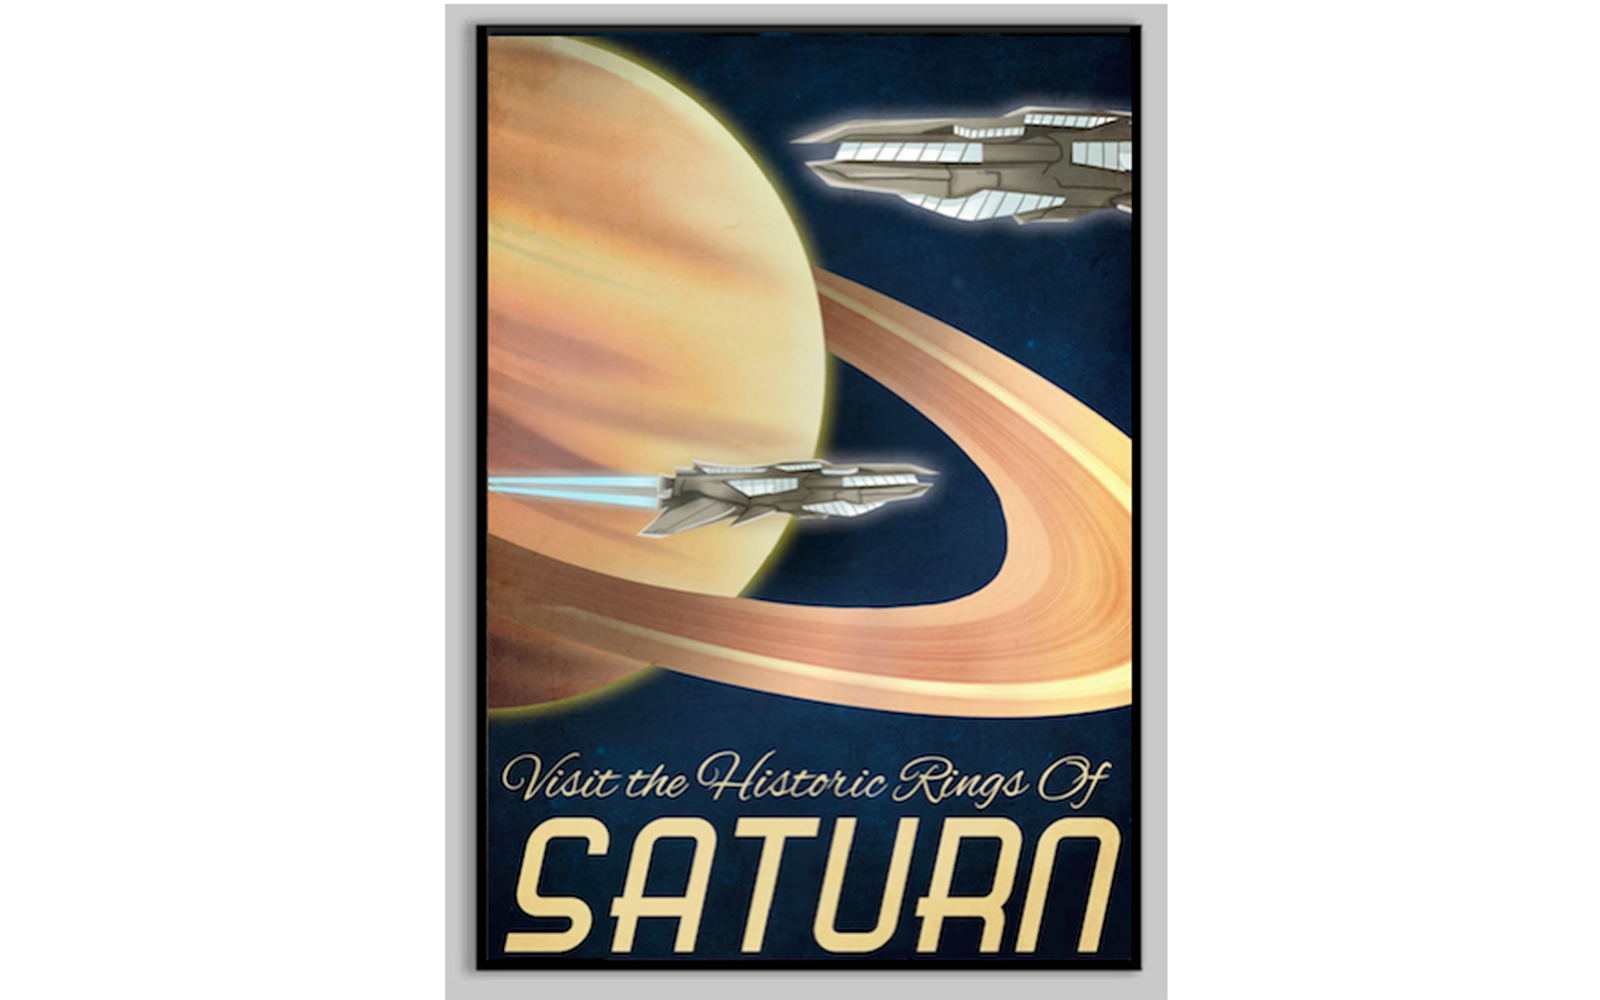 Vintage Space Travel Posters: Road Trip Around the Rings of Saturn